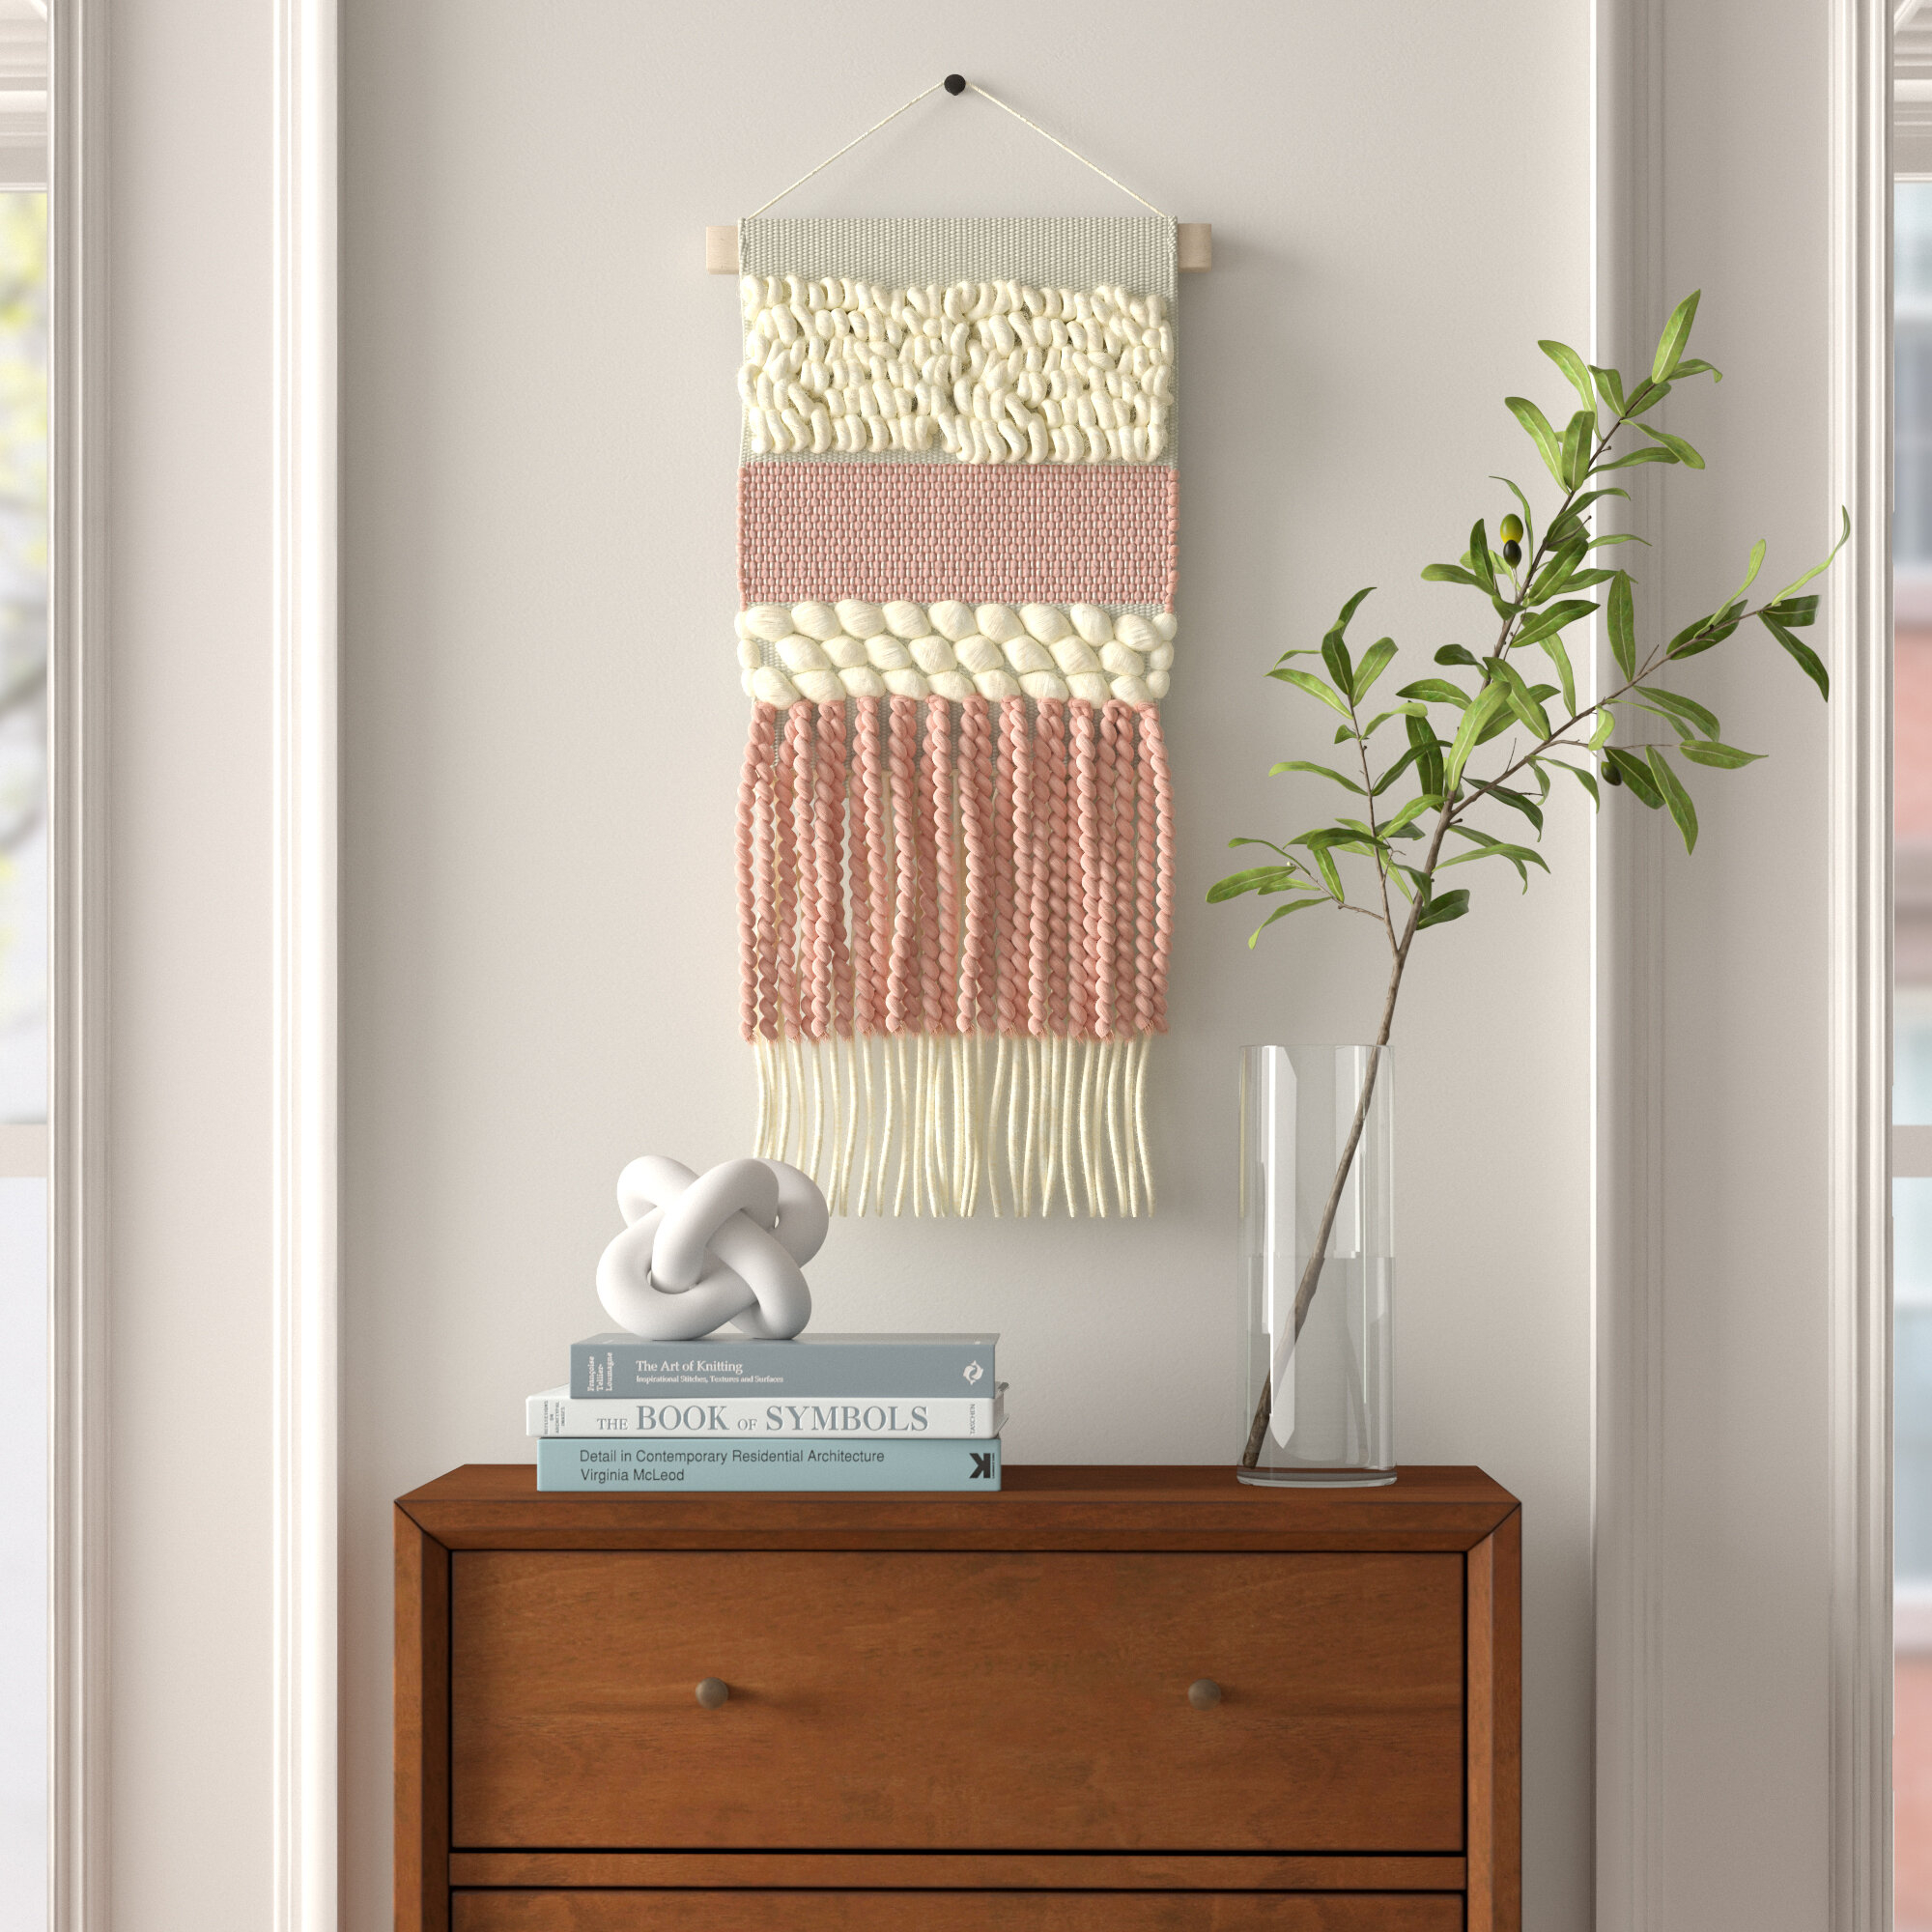 Rod Tan Tapestries You'll Love In 2021 | Wayfair With 2017 Blended Fabric Teresina Wool And Viscose Wall Hangings With Hanging Accessories Included (View 7 of 20)